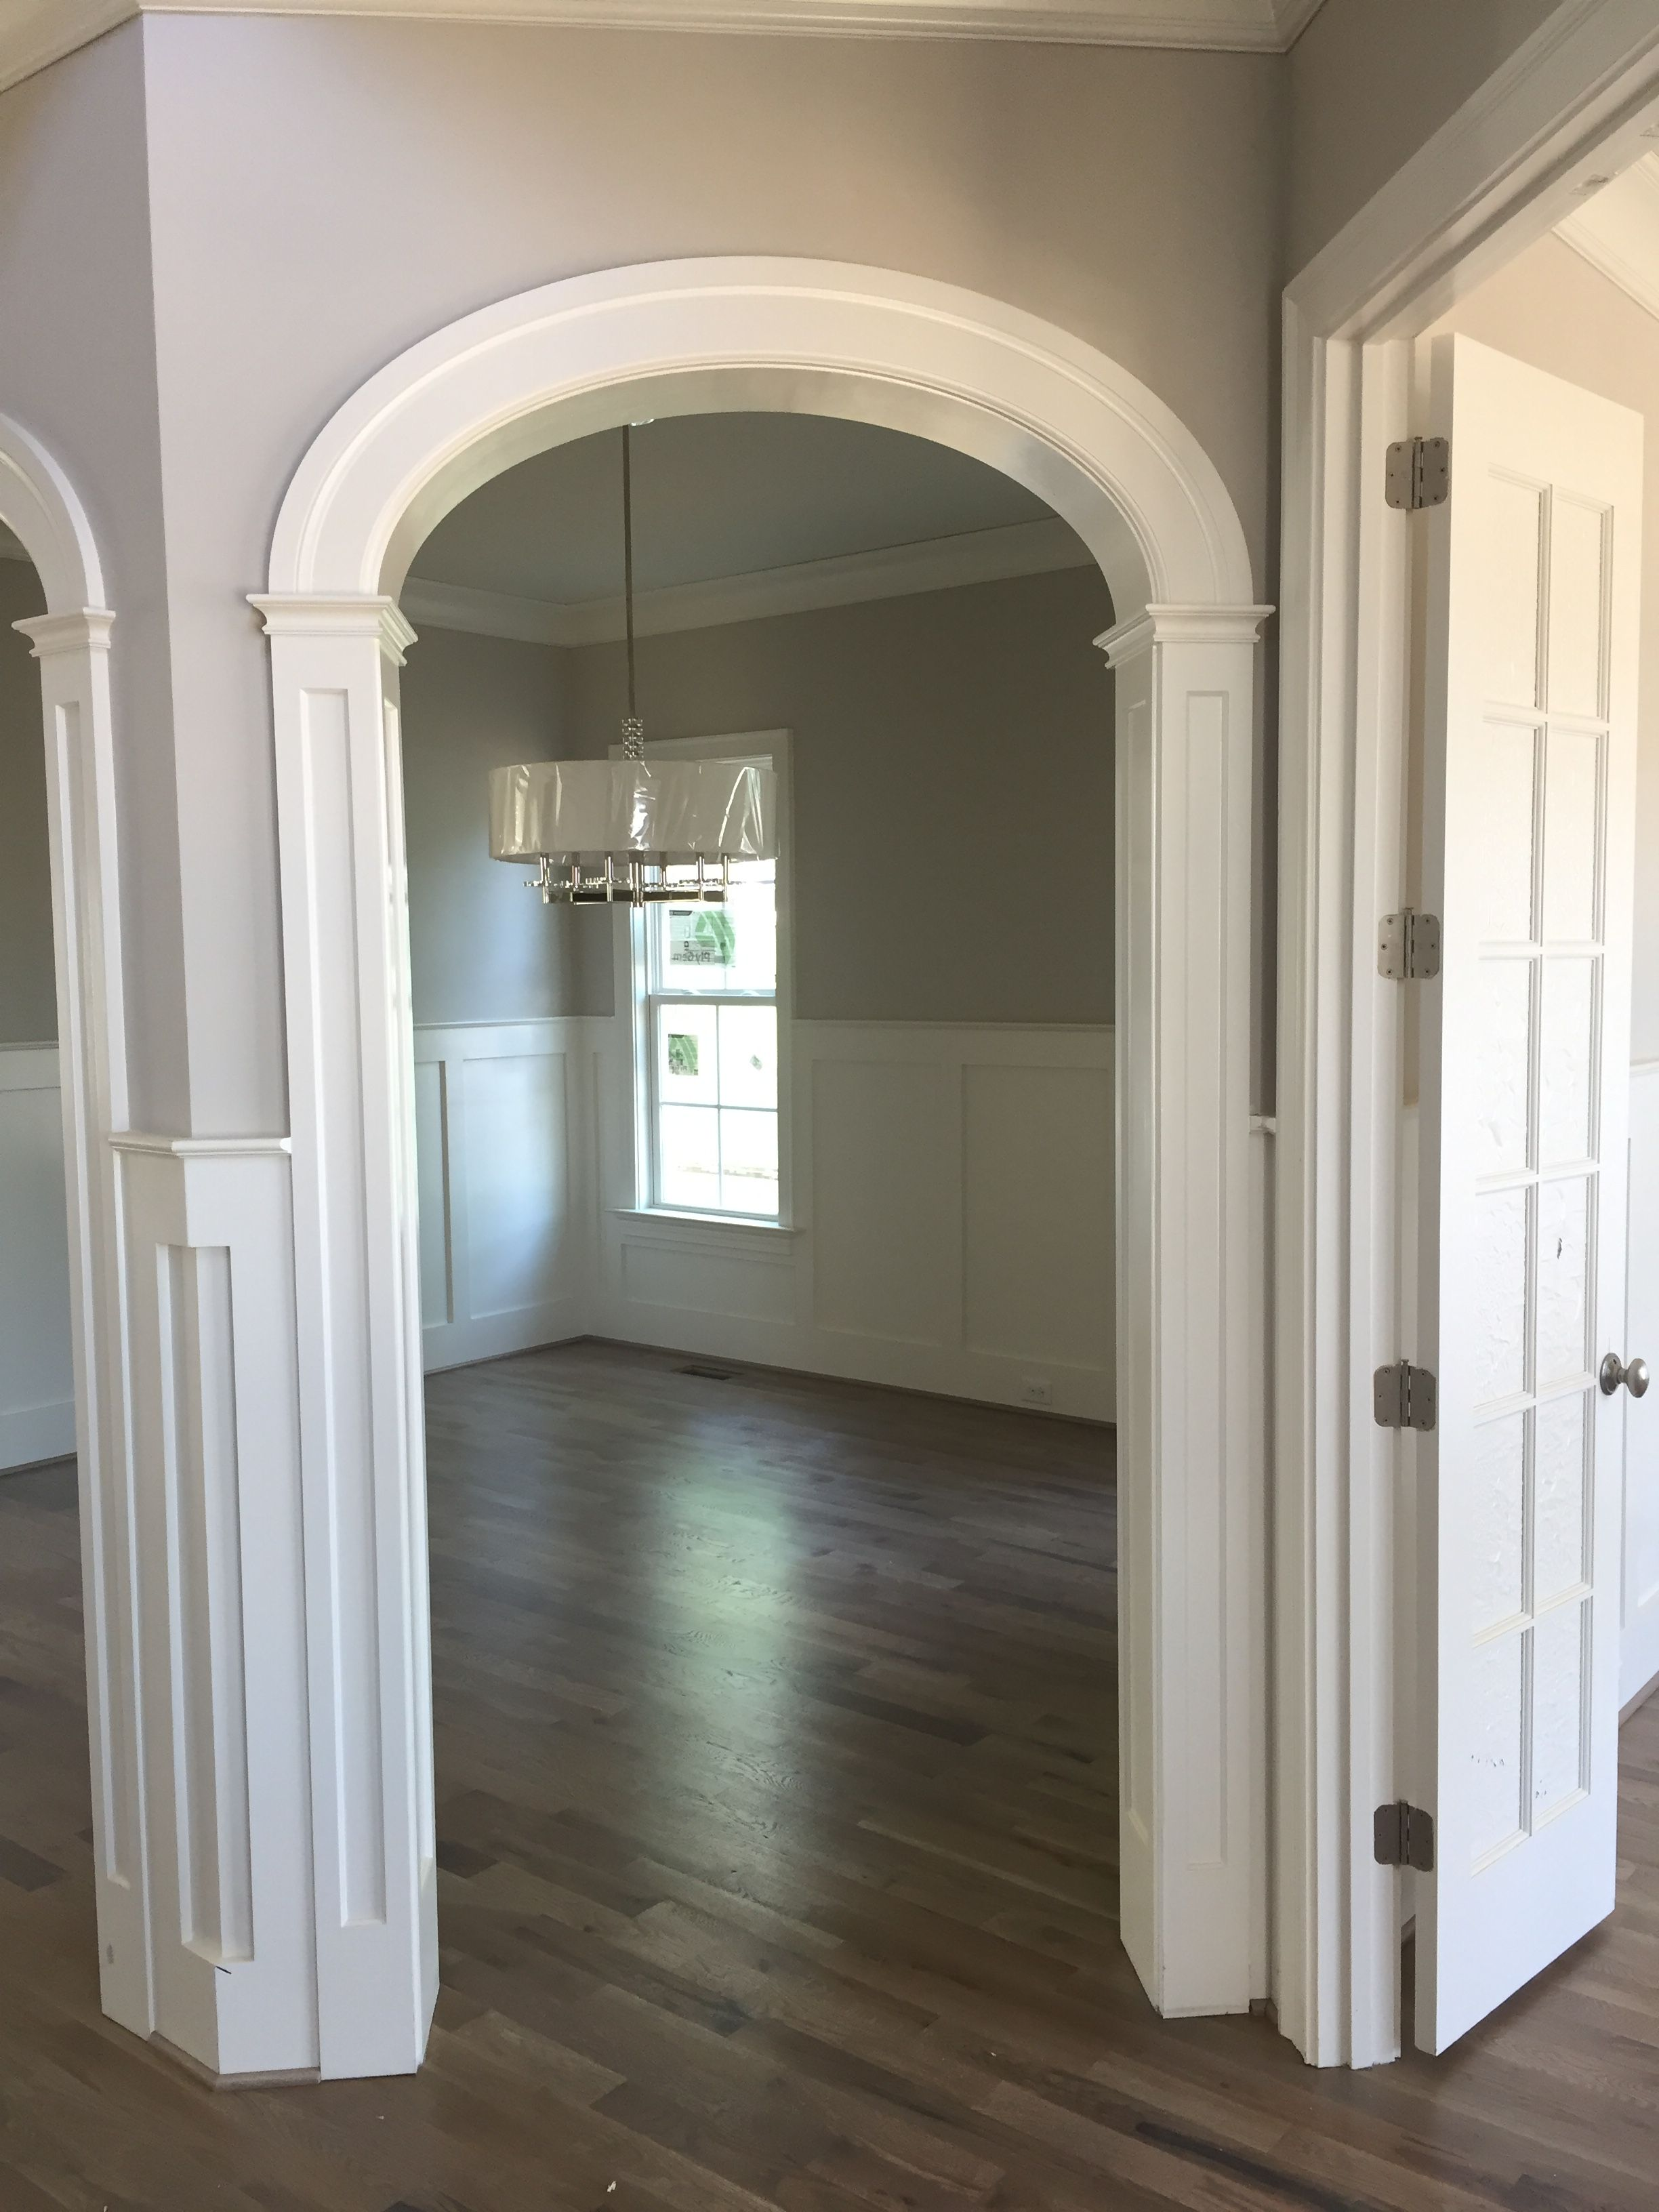 Arched Doorway Trim Details. Add Trim To Arched Openings